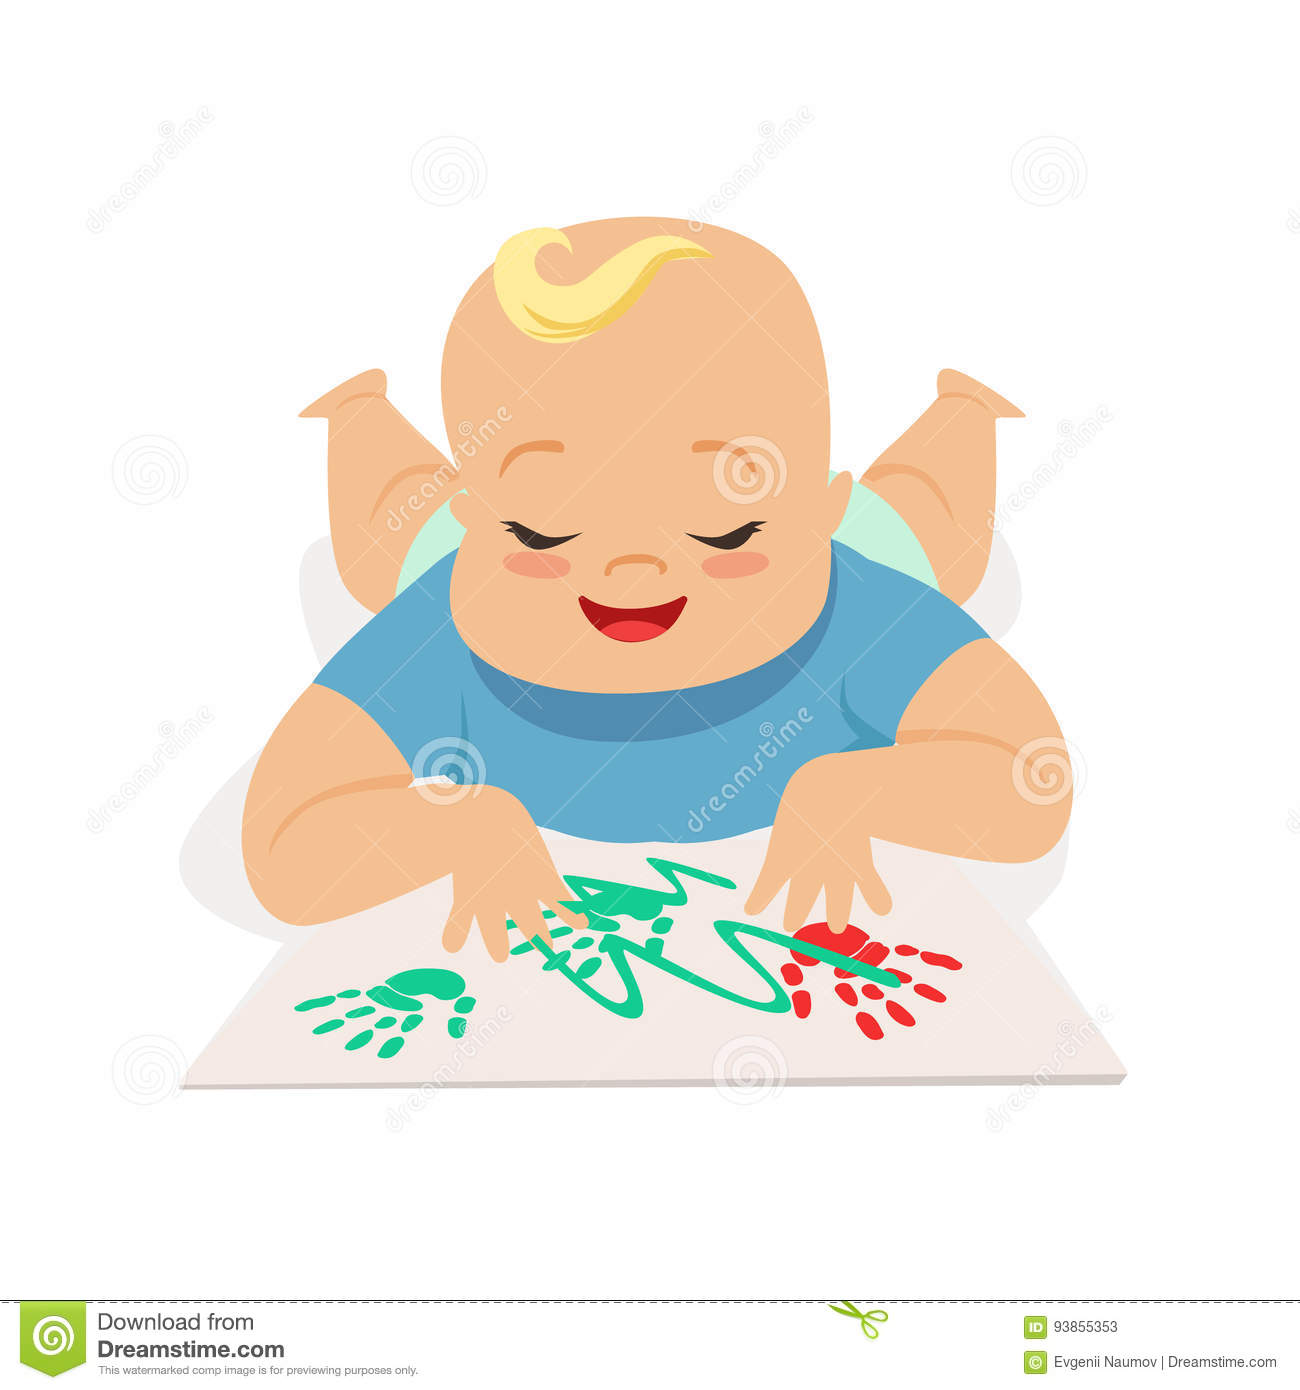 Cute happy baby boy painting by hands, colorful cartoon character vector Illustration